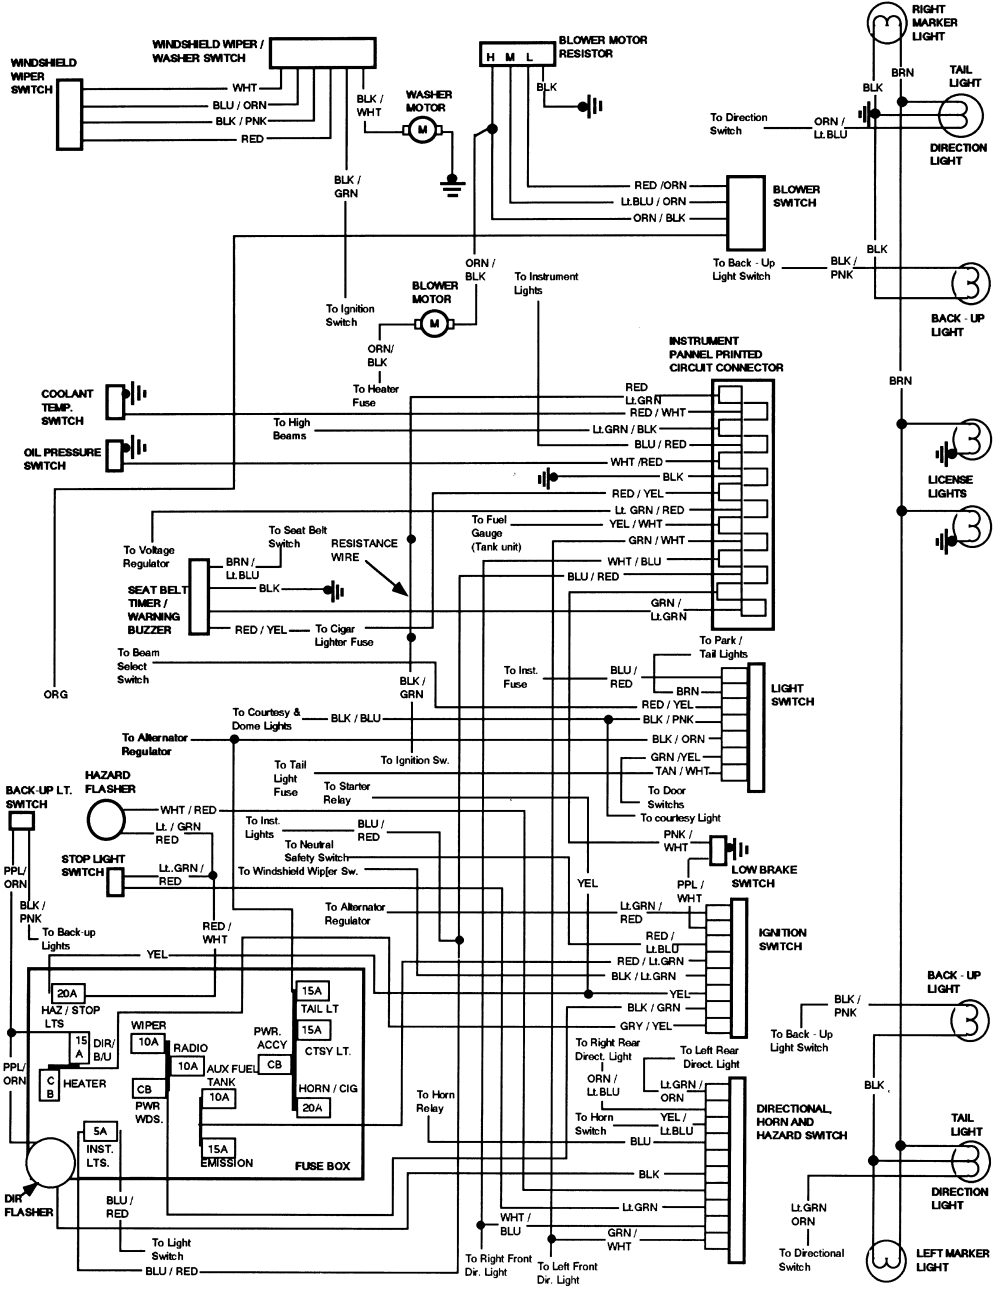 Diagram  Looking For Radio And Speaker Wiring Diagrams For 1989 Wiring Diagram Full Version Hd